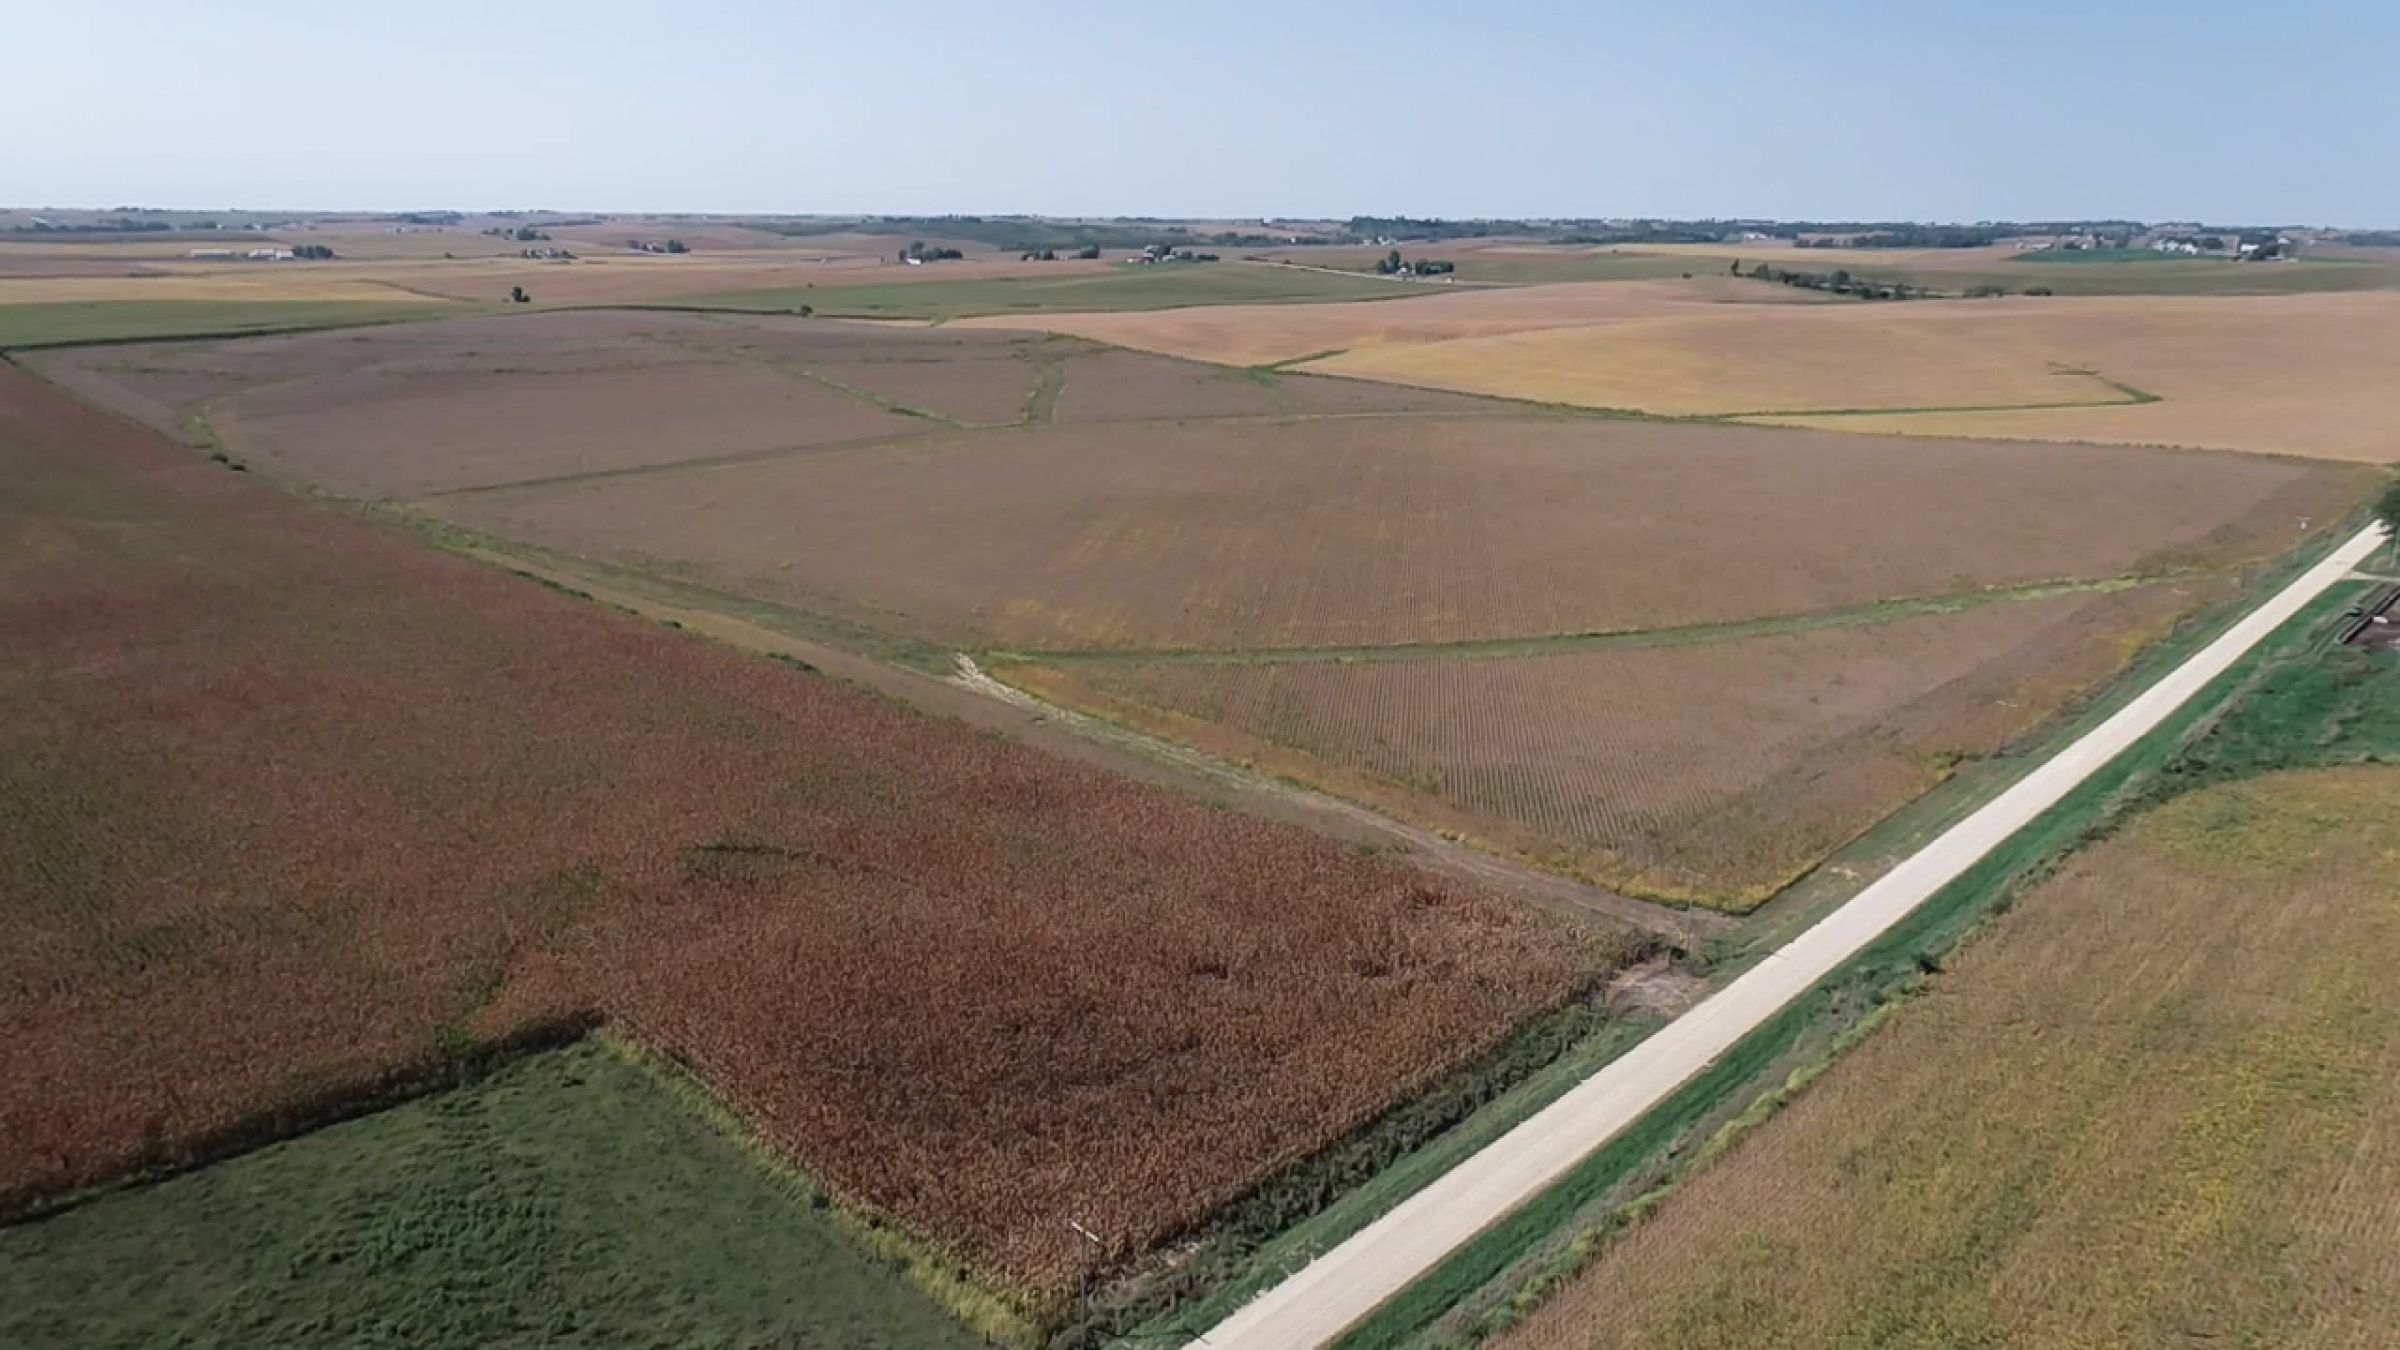 auctions-jackson-county-iowa-79-acres-listing-number-15751-2-2021-09-21-173650.PNG